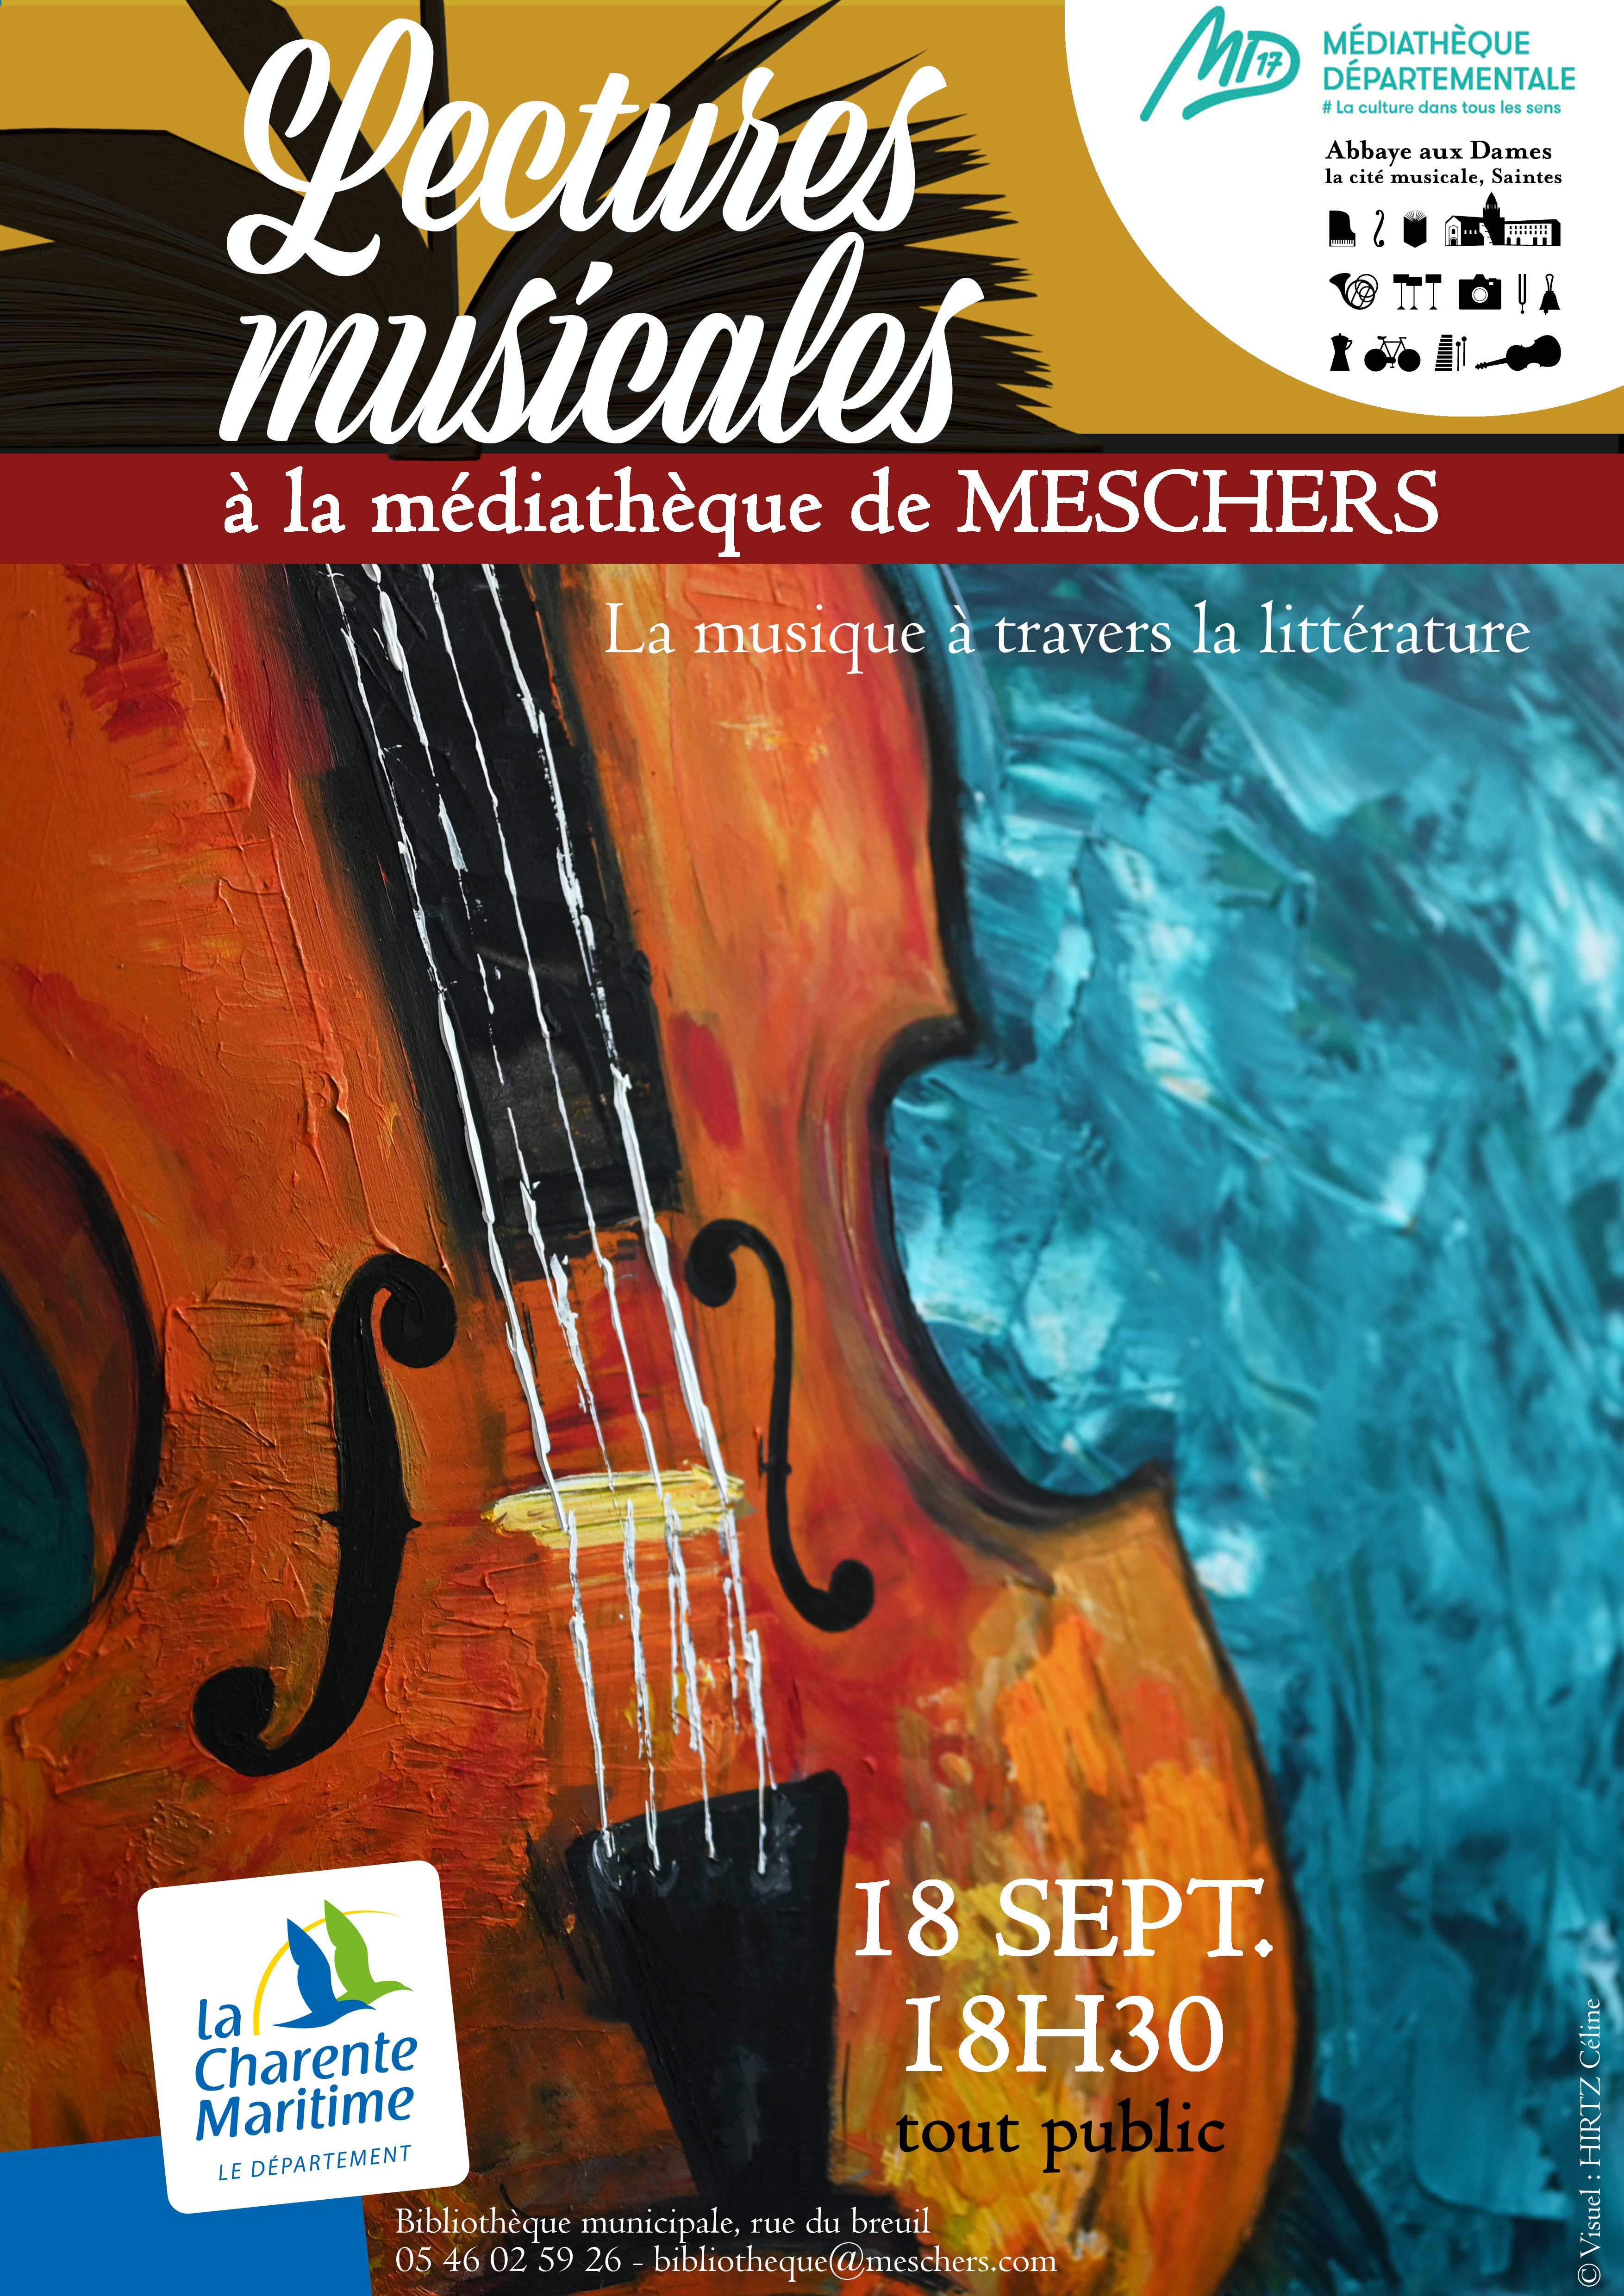 Affiche A3 Lectures musicales2019 MESCHERS v2